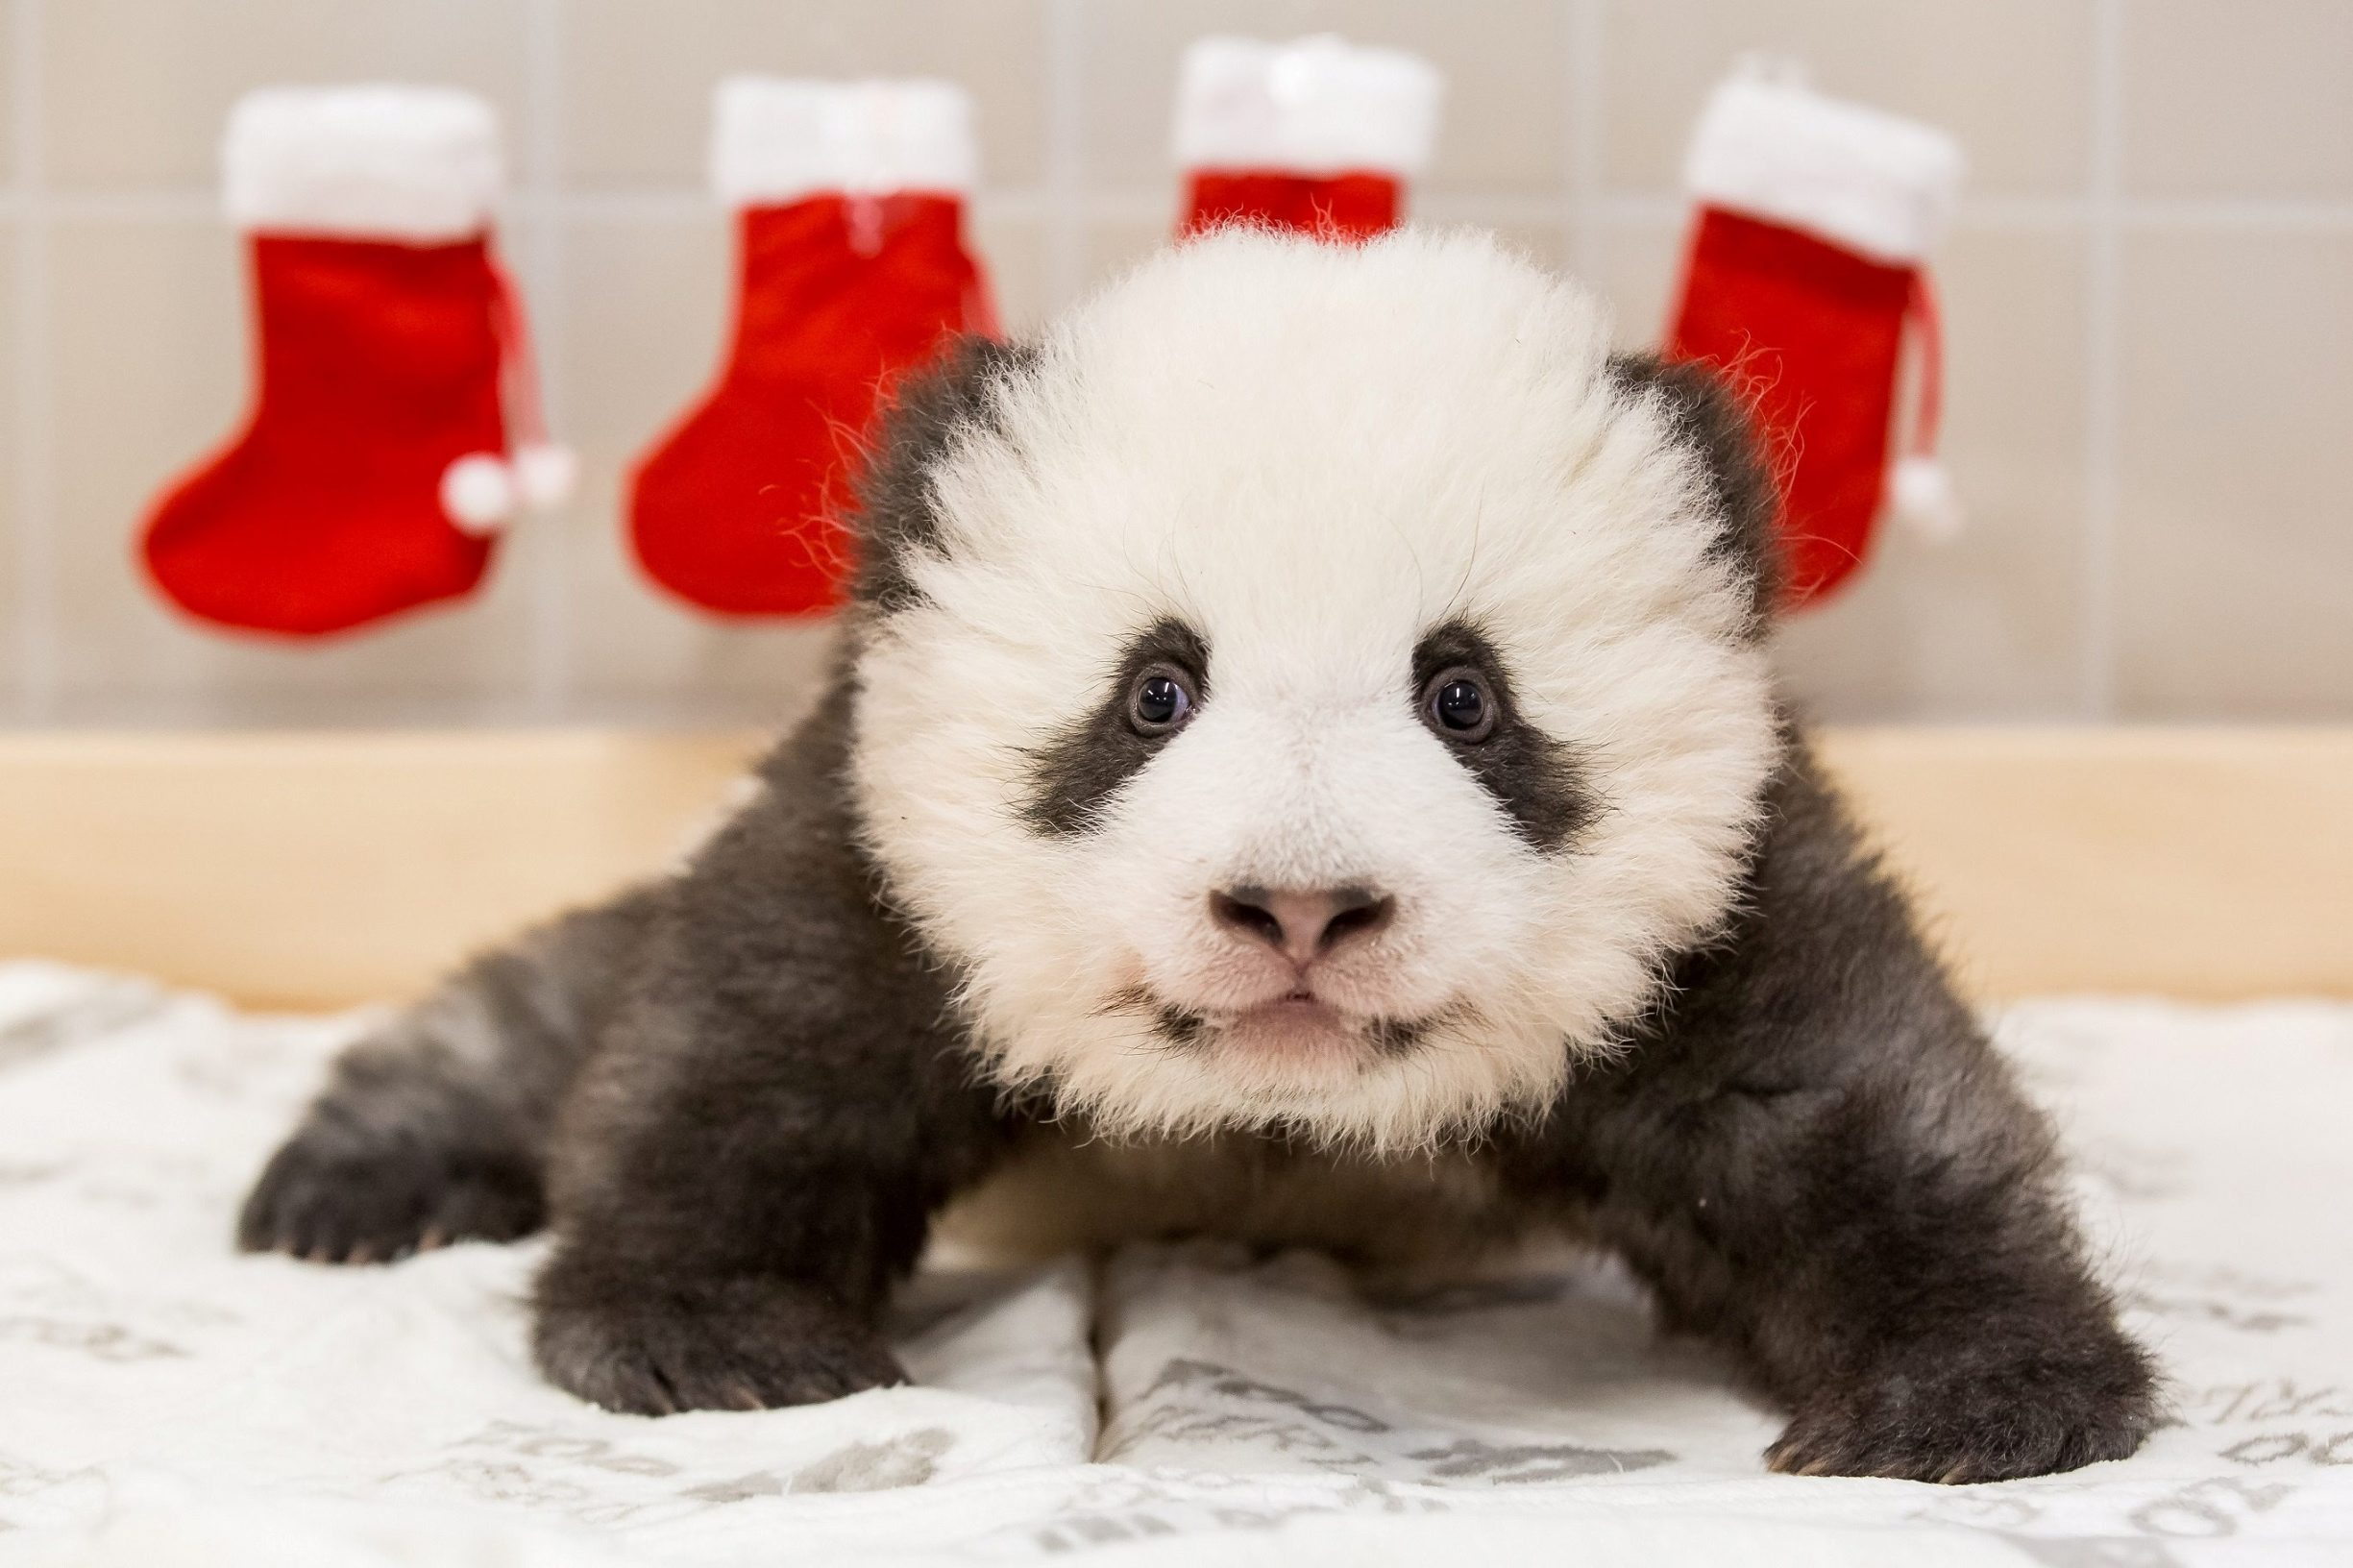 A handout photo shows one of the twin panda cubs resting in Berlin Zoo, Germany, December 4, 2019. Picture taken December 4, 2019. Berlin Zoo/Handout via REUTERS ATTENTION EDITORS - THIS IMAGE WAS PROVIDED BY A THIRD PARTY. NO RESALES. NO ARCHIVES. MANDATORY CREDIT.